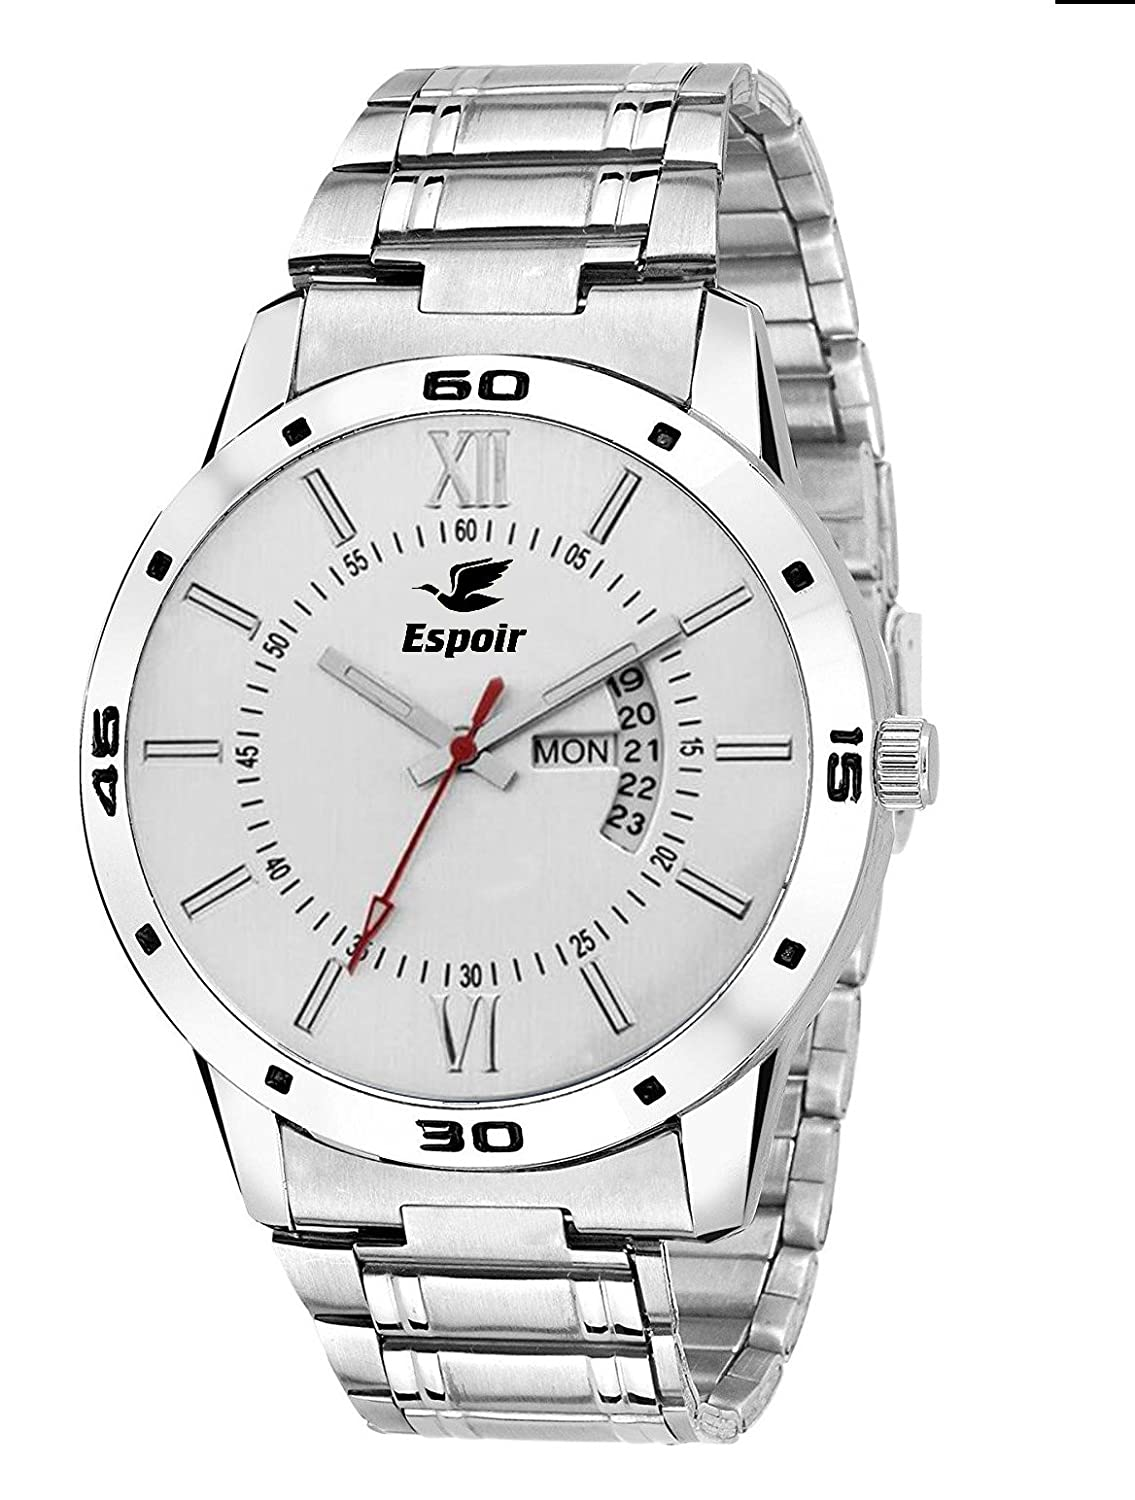 Deals on Stainless Steel Men's Watch